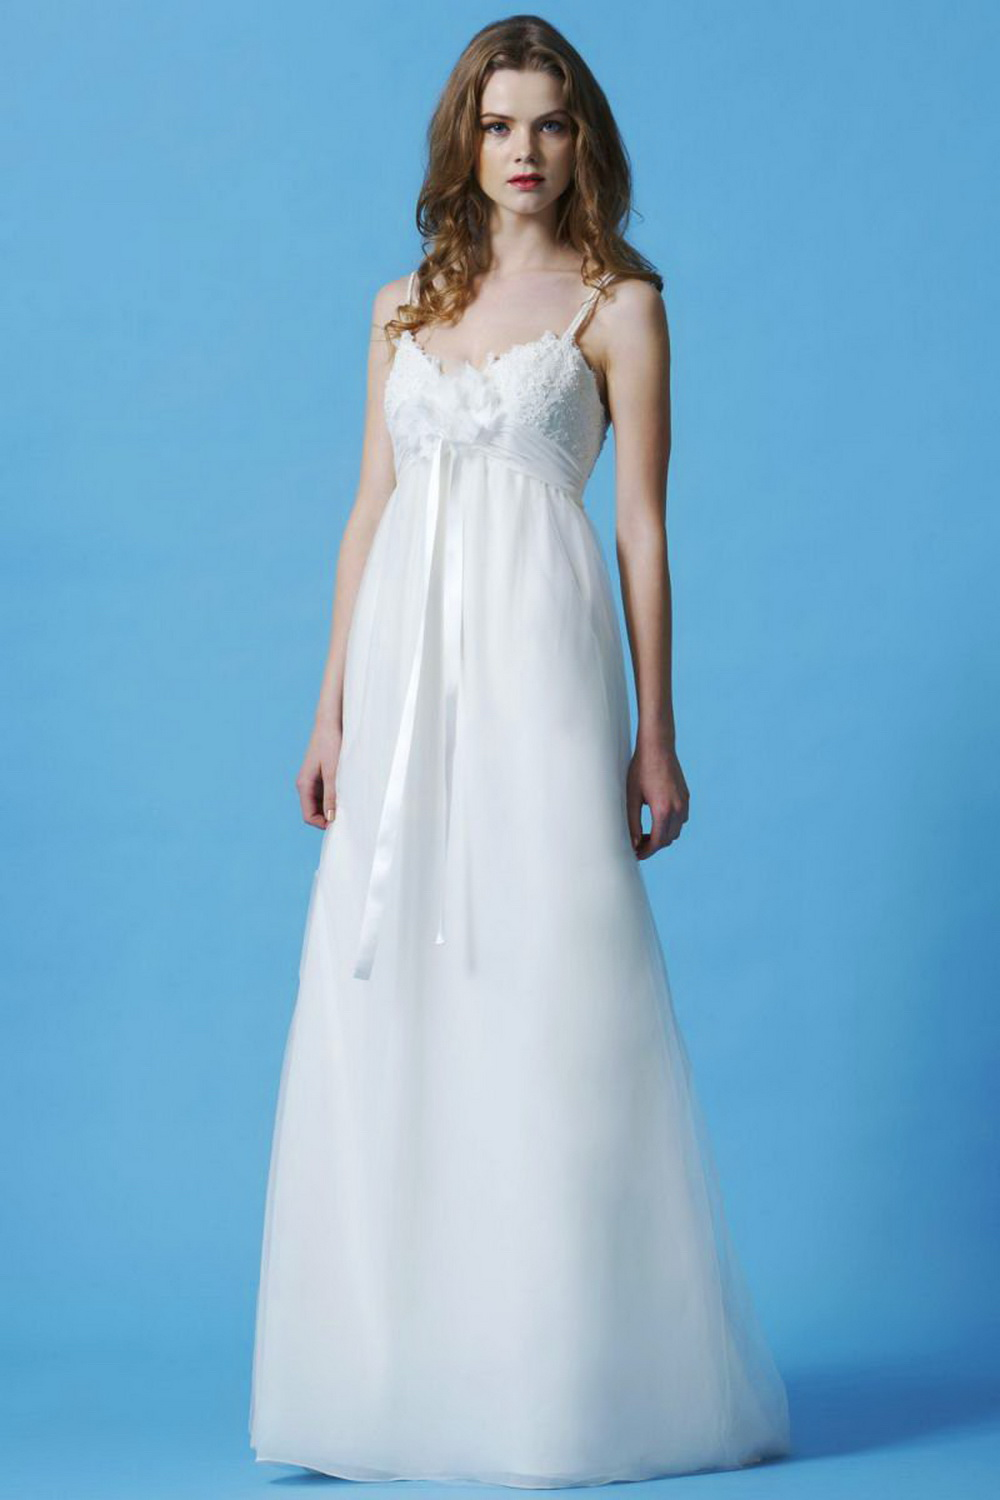 Dream Dress Bridal: Wedding Dress Silhouettes